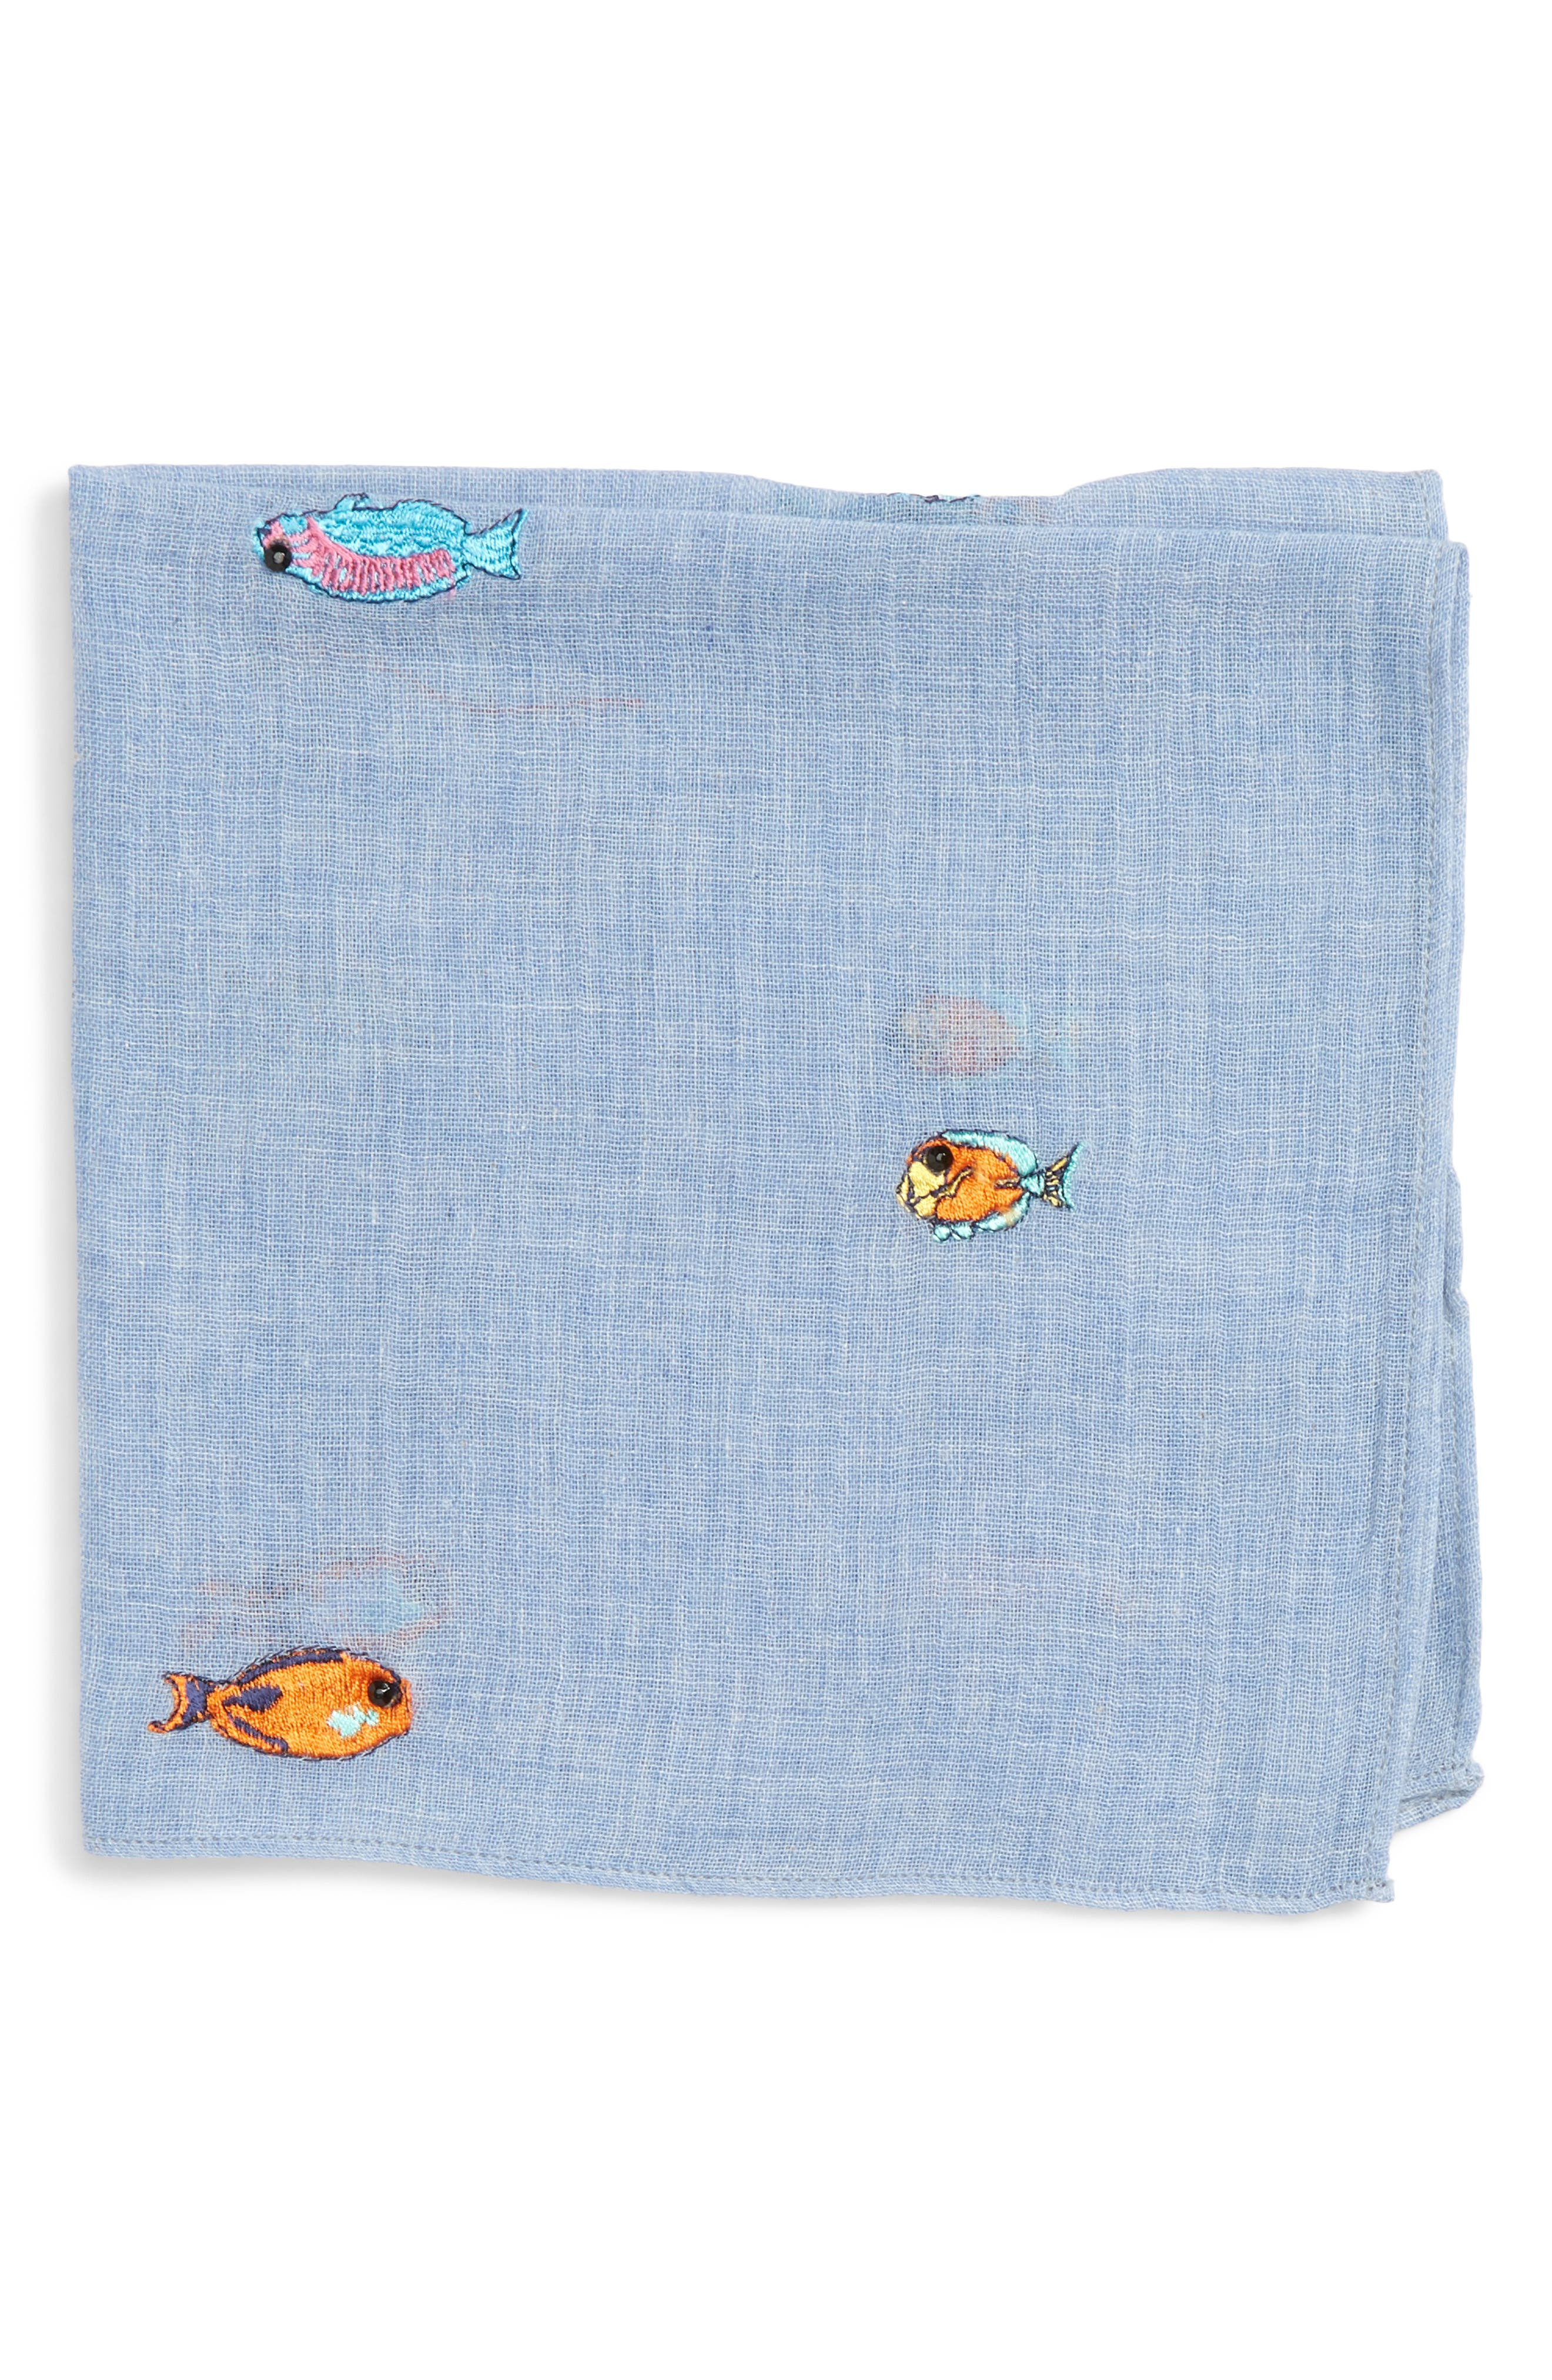 Embroidered Fish Pocket Square,                         Main,                         color, 424